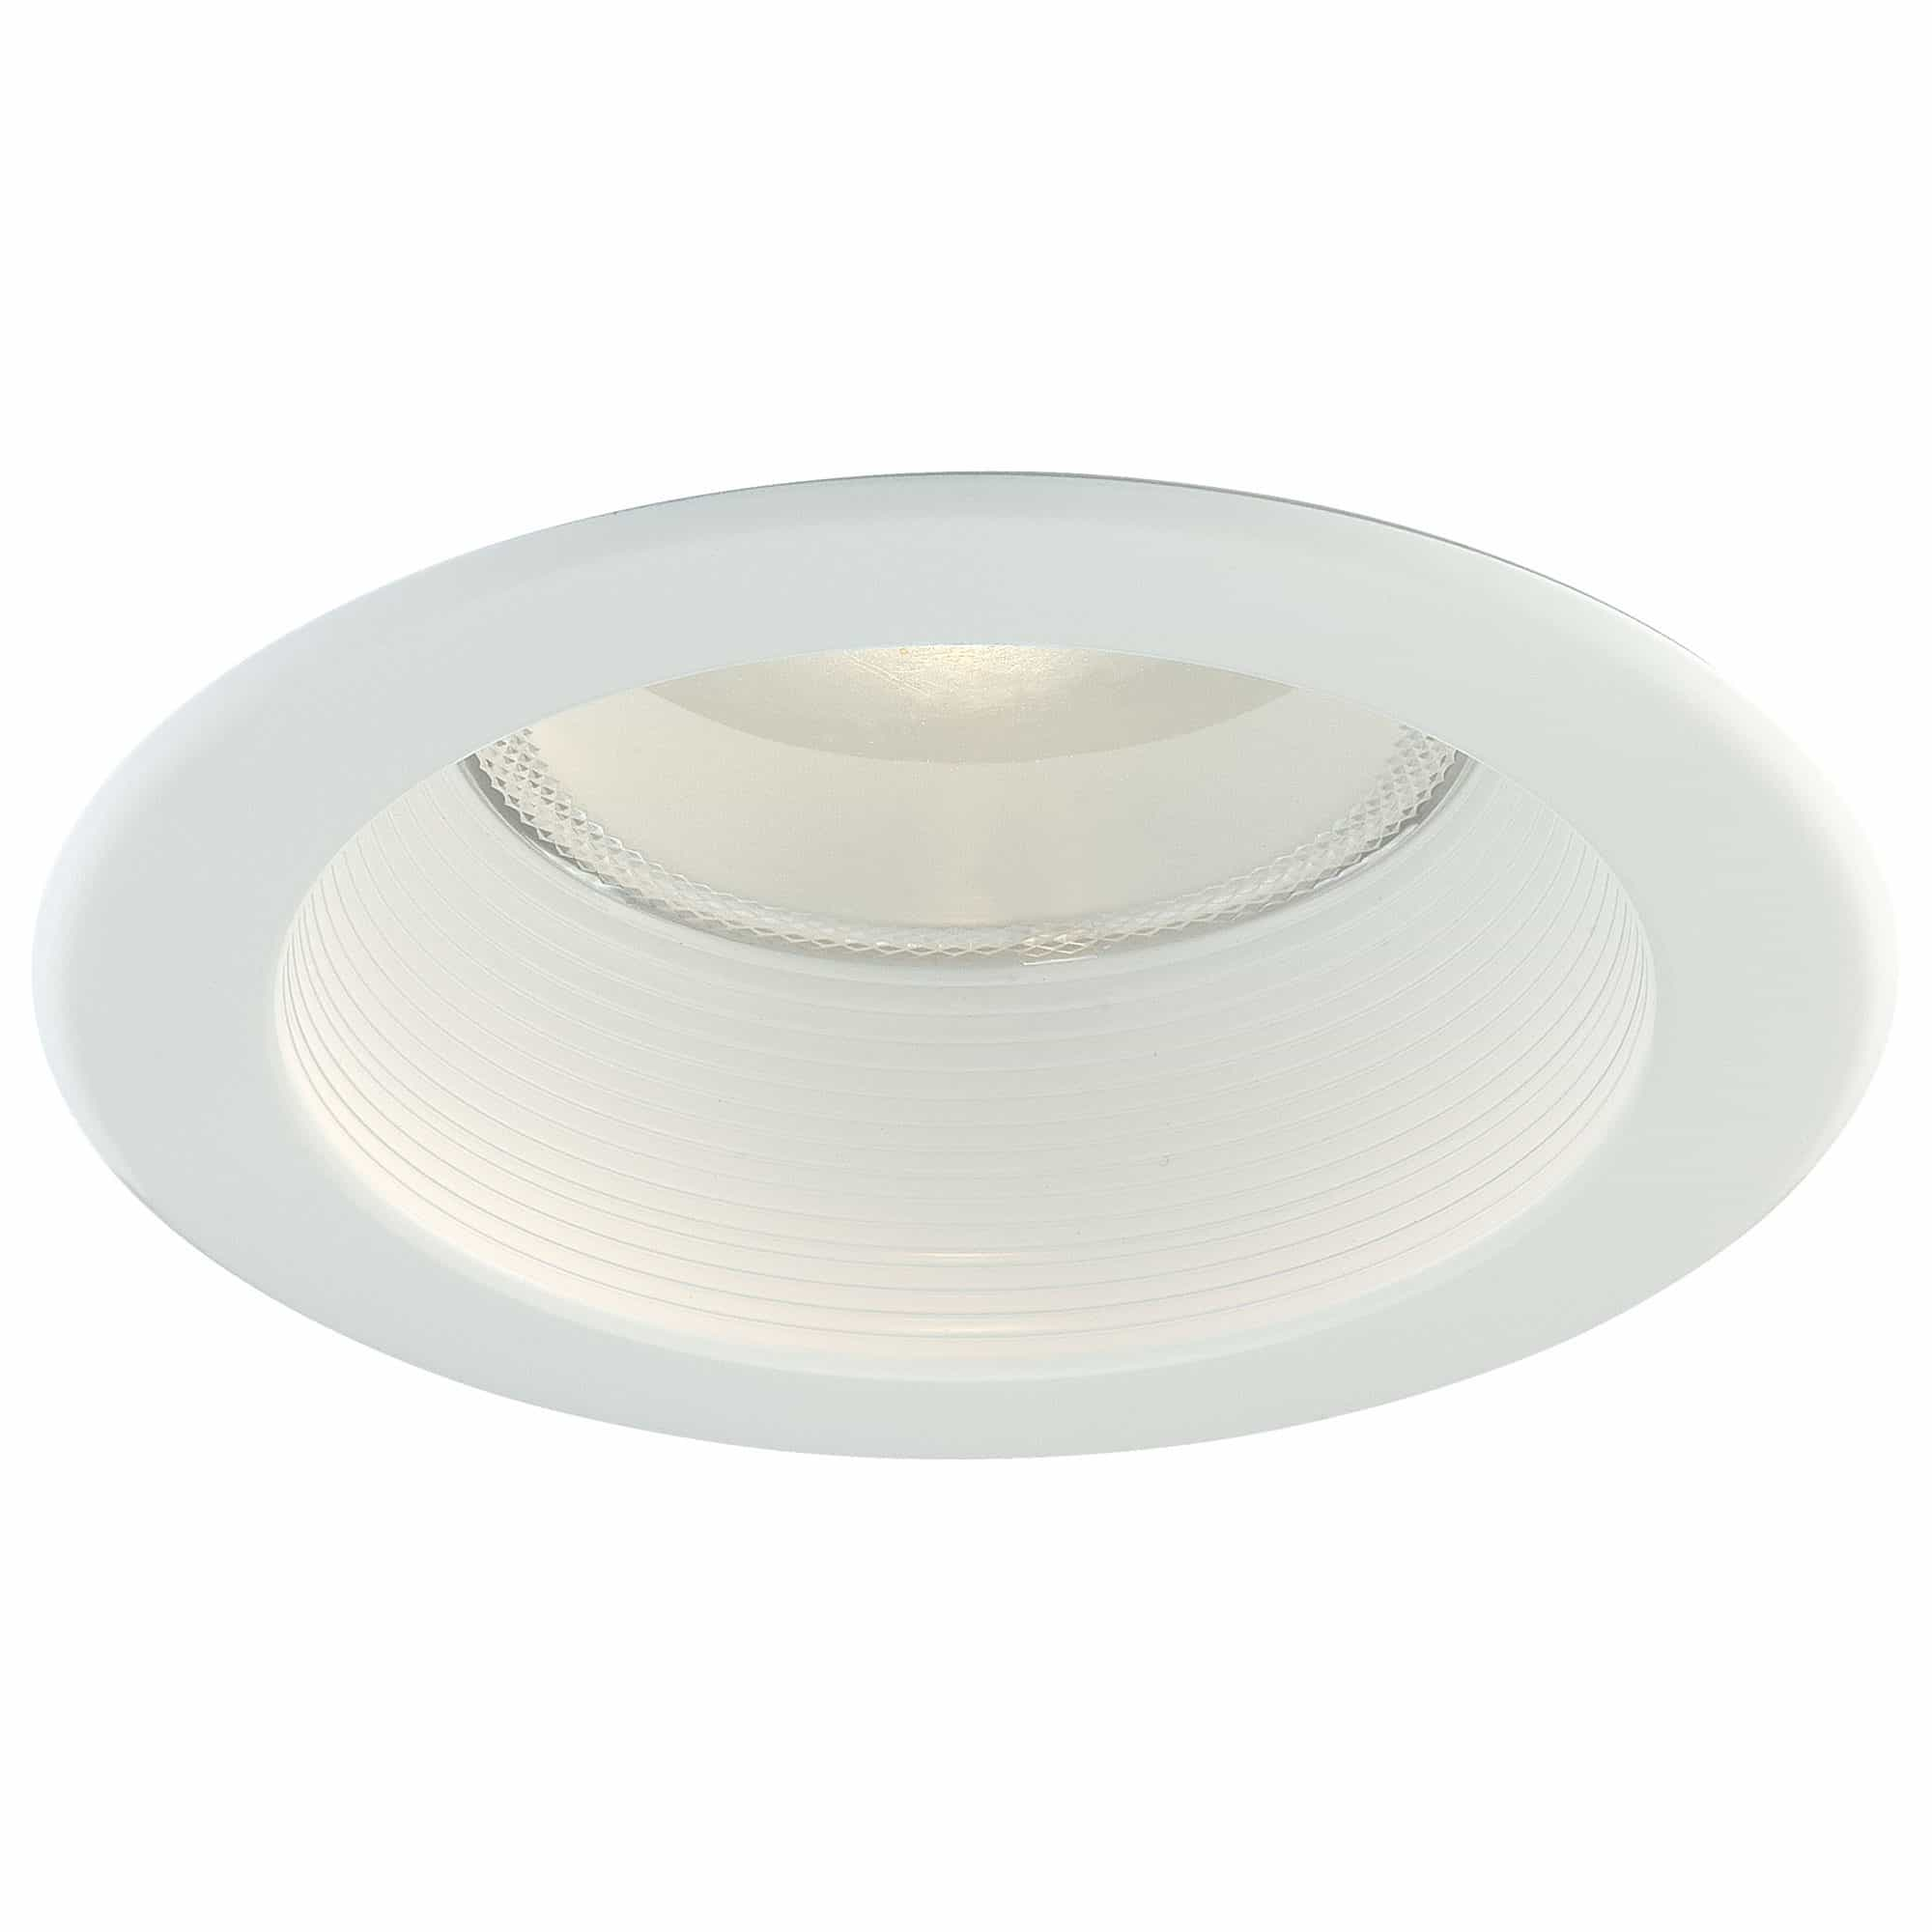 Recessed lighting williams electric 510 339 5601 oakland led lights recessed can 6 inch trim mozeypictures Images